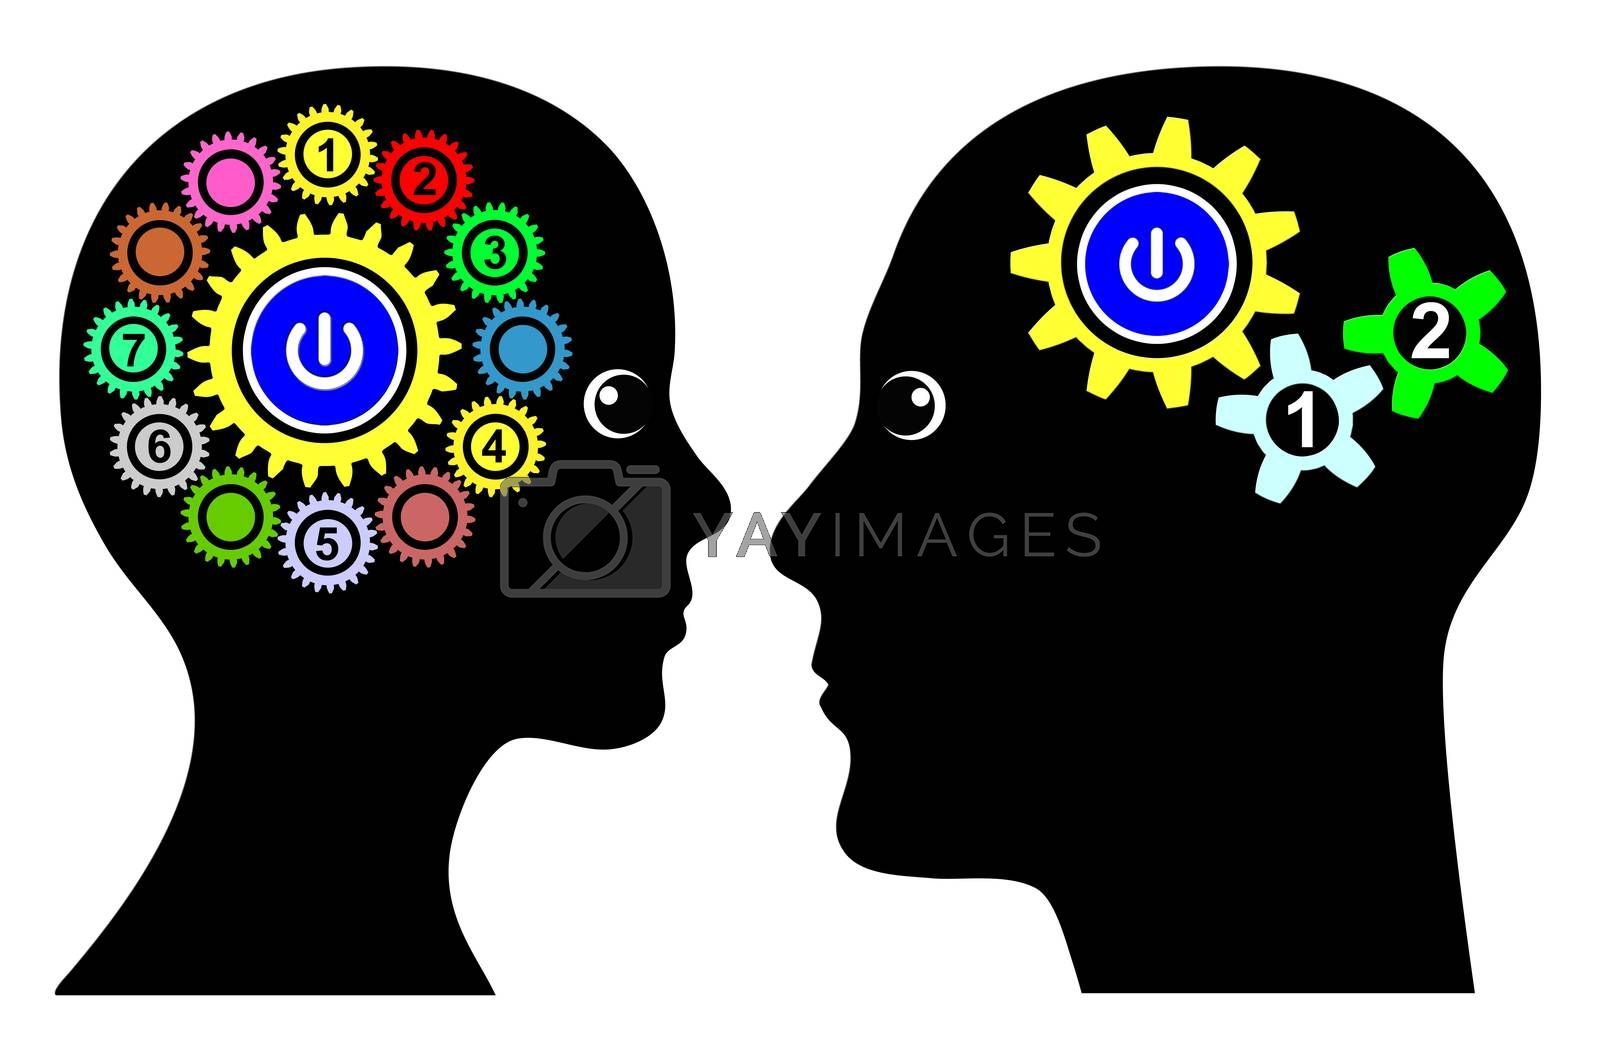 Man and woman with different thinking patterns, multitasking or single tasking when making decision or solving problems